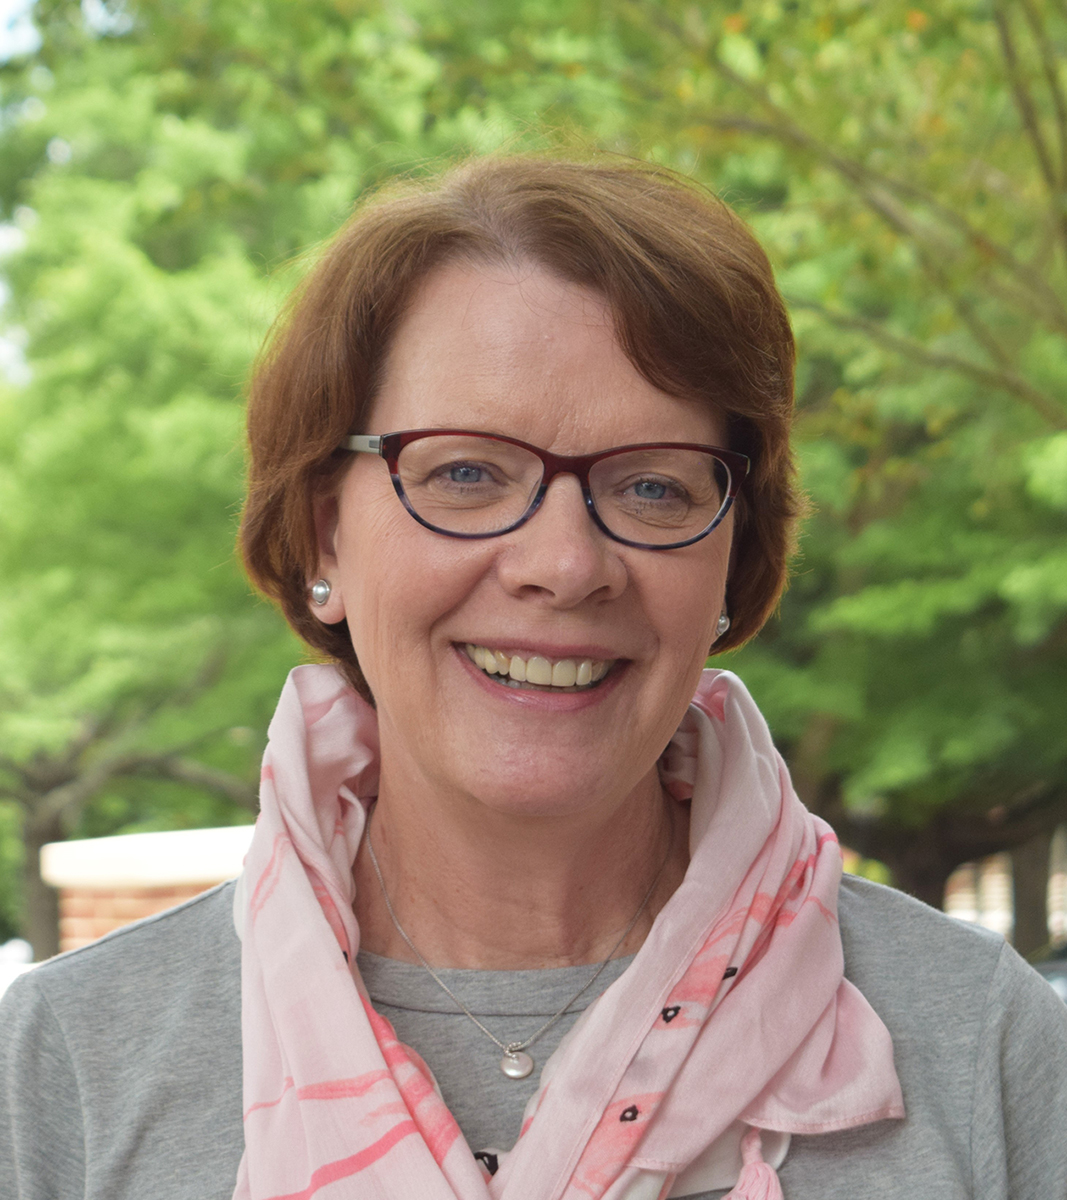 Katherine McCarthy, new associate provost of enrollment management